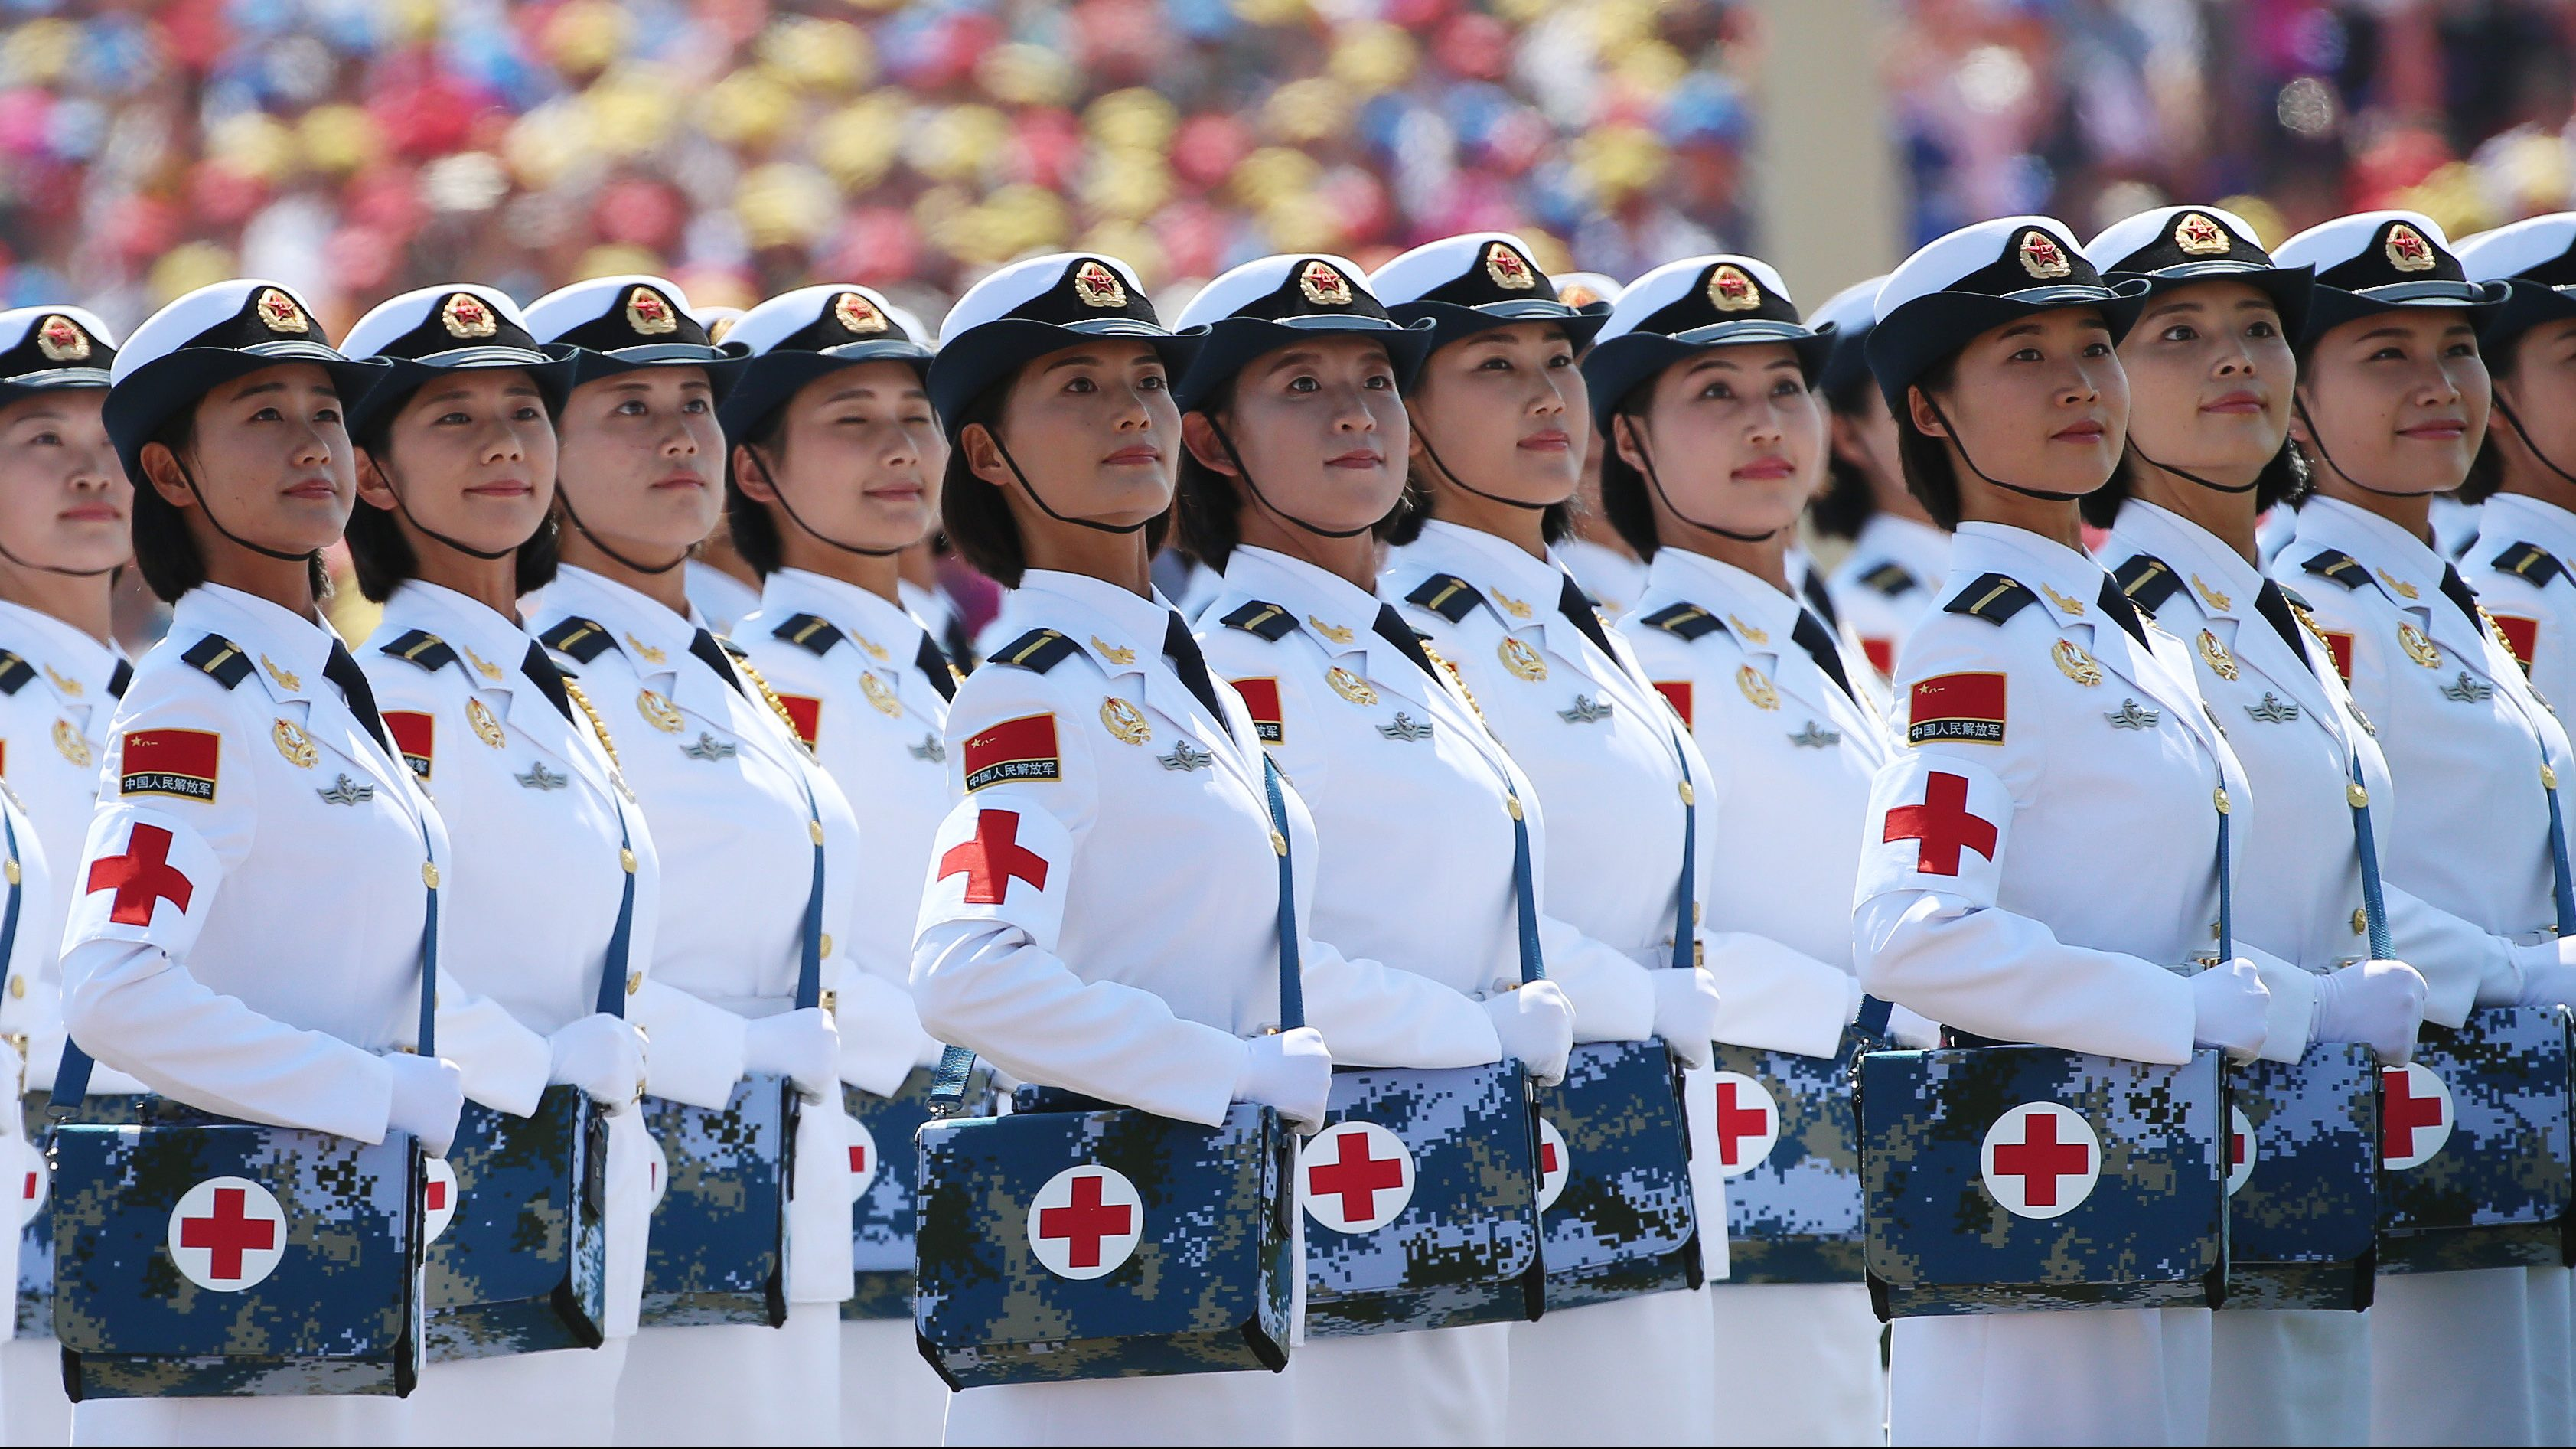 Chinese female medical corps soldiers march on Tiananmen Square during a military parade marking the 70th Anniversary of the Victory of Chinese People's Resistance against Japanese Aggression and World Anti-Fascist War at Tiananmen Square in Beijing, China, 03 September 2015. China holds a military parade as one of the events taking place around the World marking the 70th Anniversary of the WWII Victory over Japan Day which marks the day Japan officially accepted the terms of surrender imposed by the by Allied Forces in the Pacific conflict.